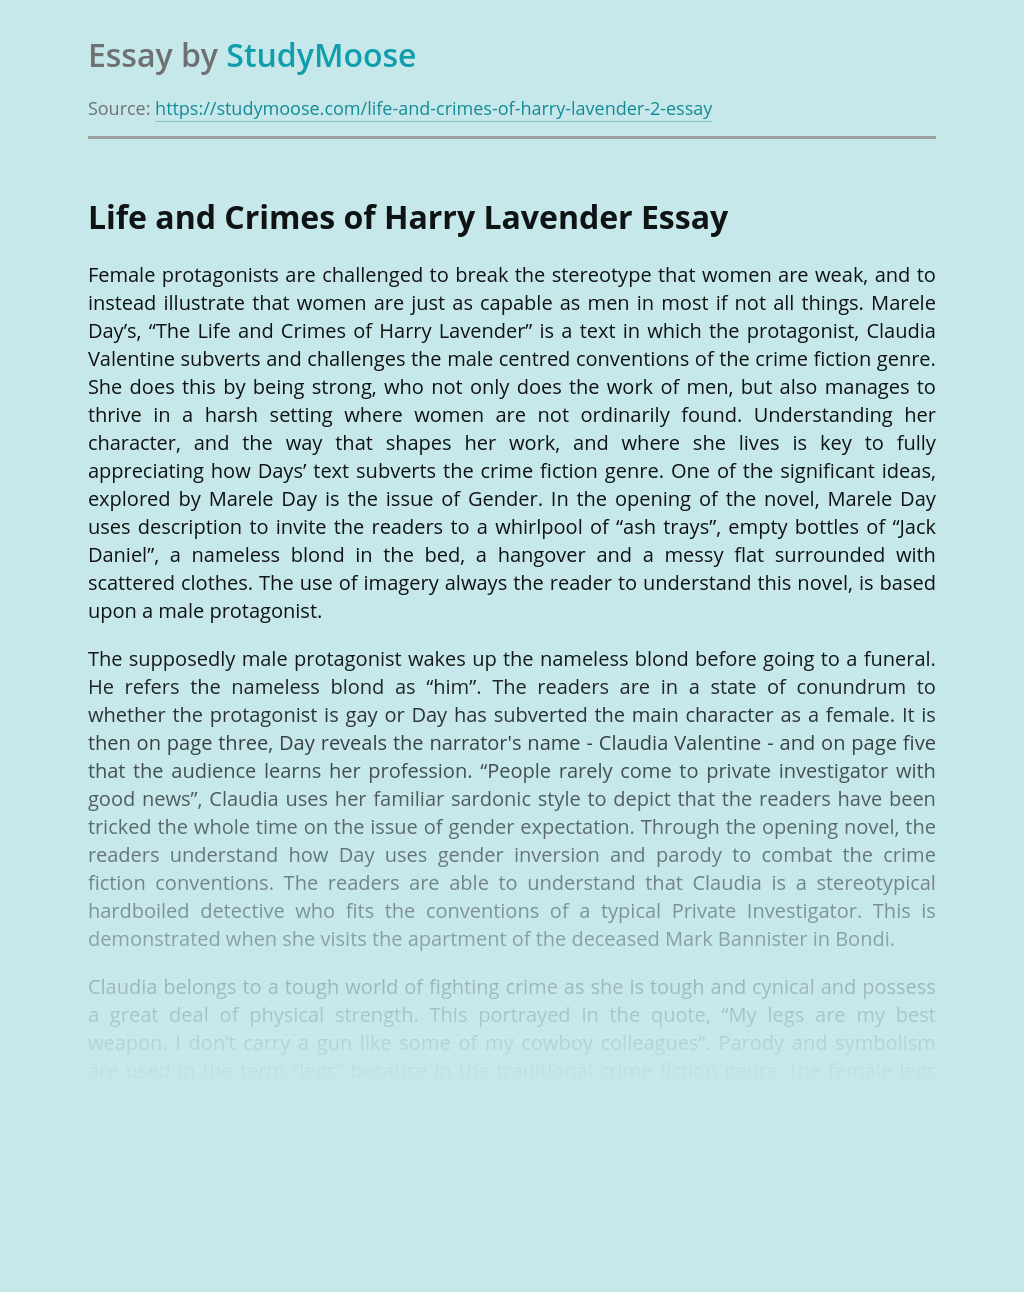 Life and Crimes of Harry Lavender